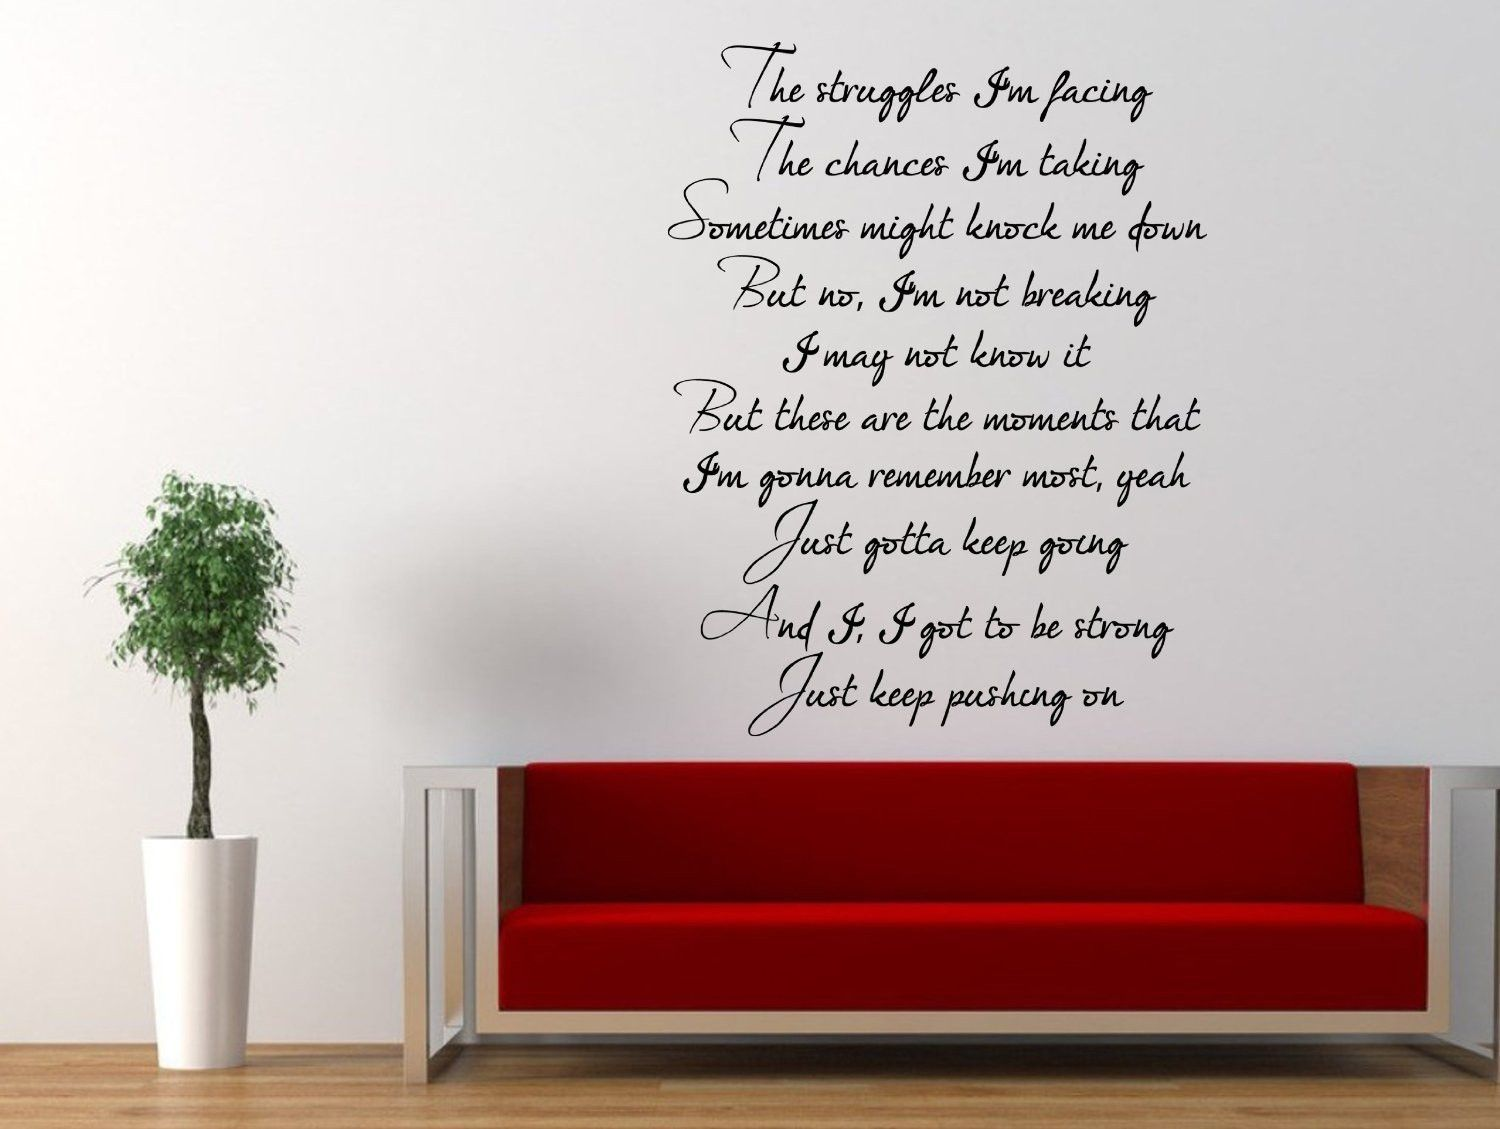 1281 best motivational quotes to bring home images on pinterest miley cyrus wall decal the climb inspirational quote just keep pushing on 22 x 17 inches amipublicfo Images